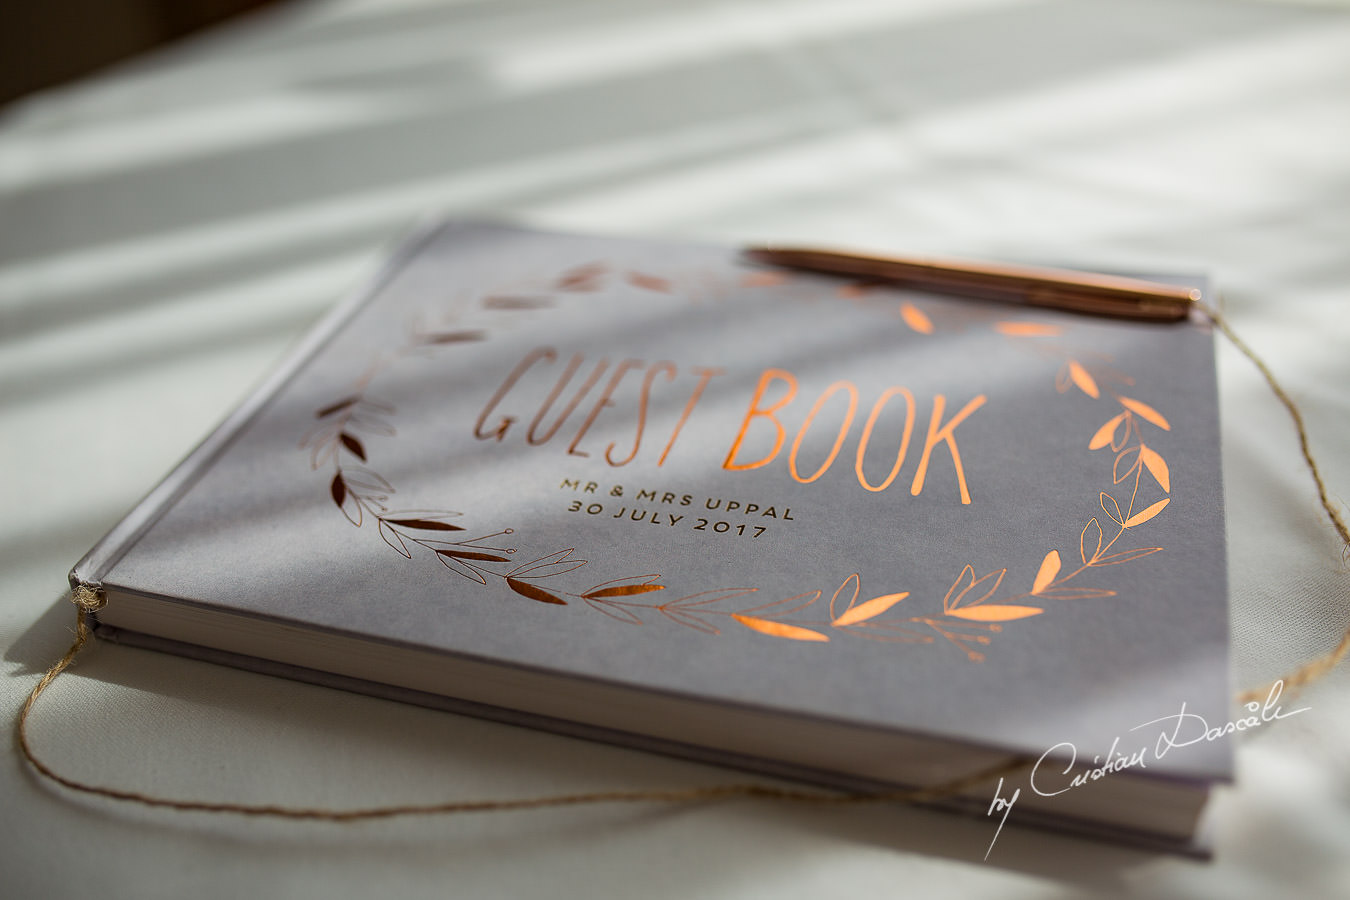 The guest book photographed by Cristian Dascalu at Athena Beach Hotel in Paphos, Cyprus, during a symbolic wedding.